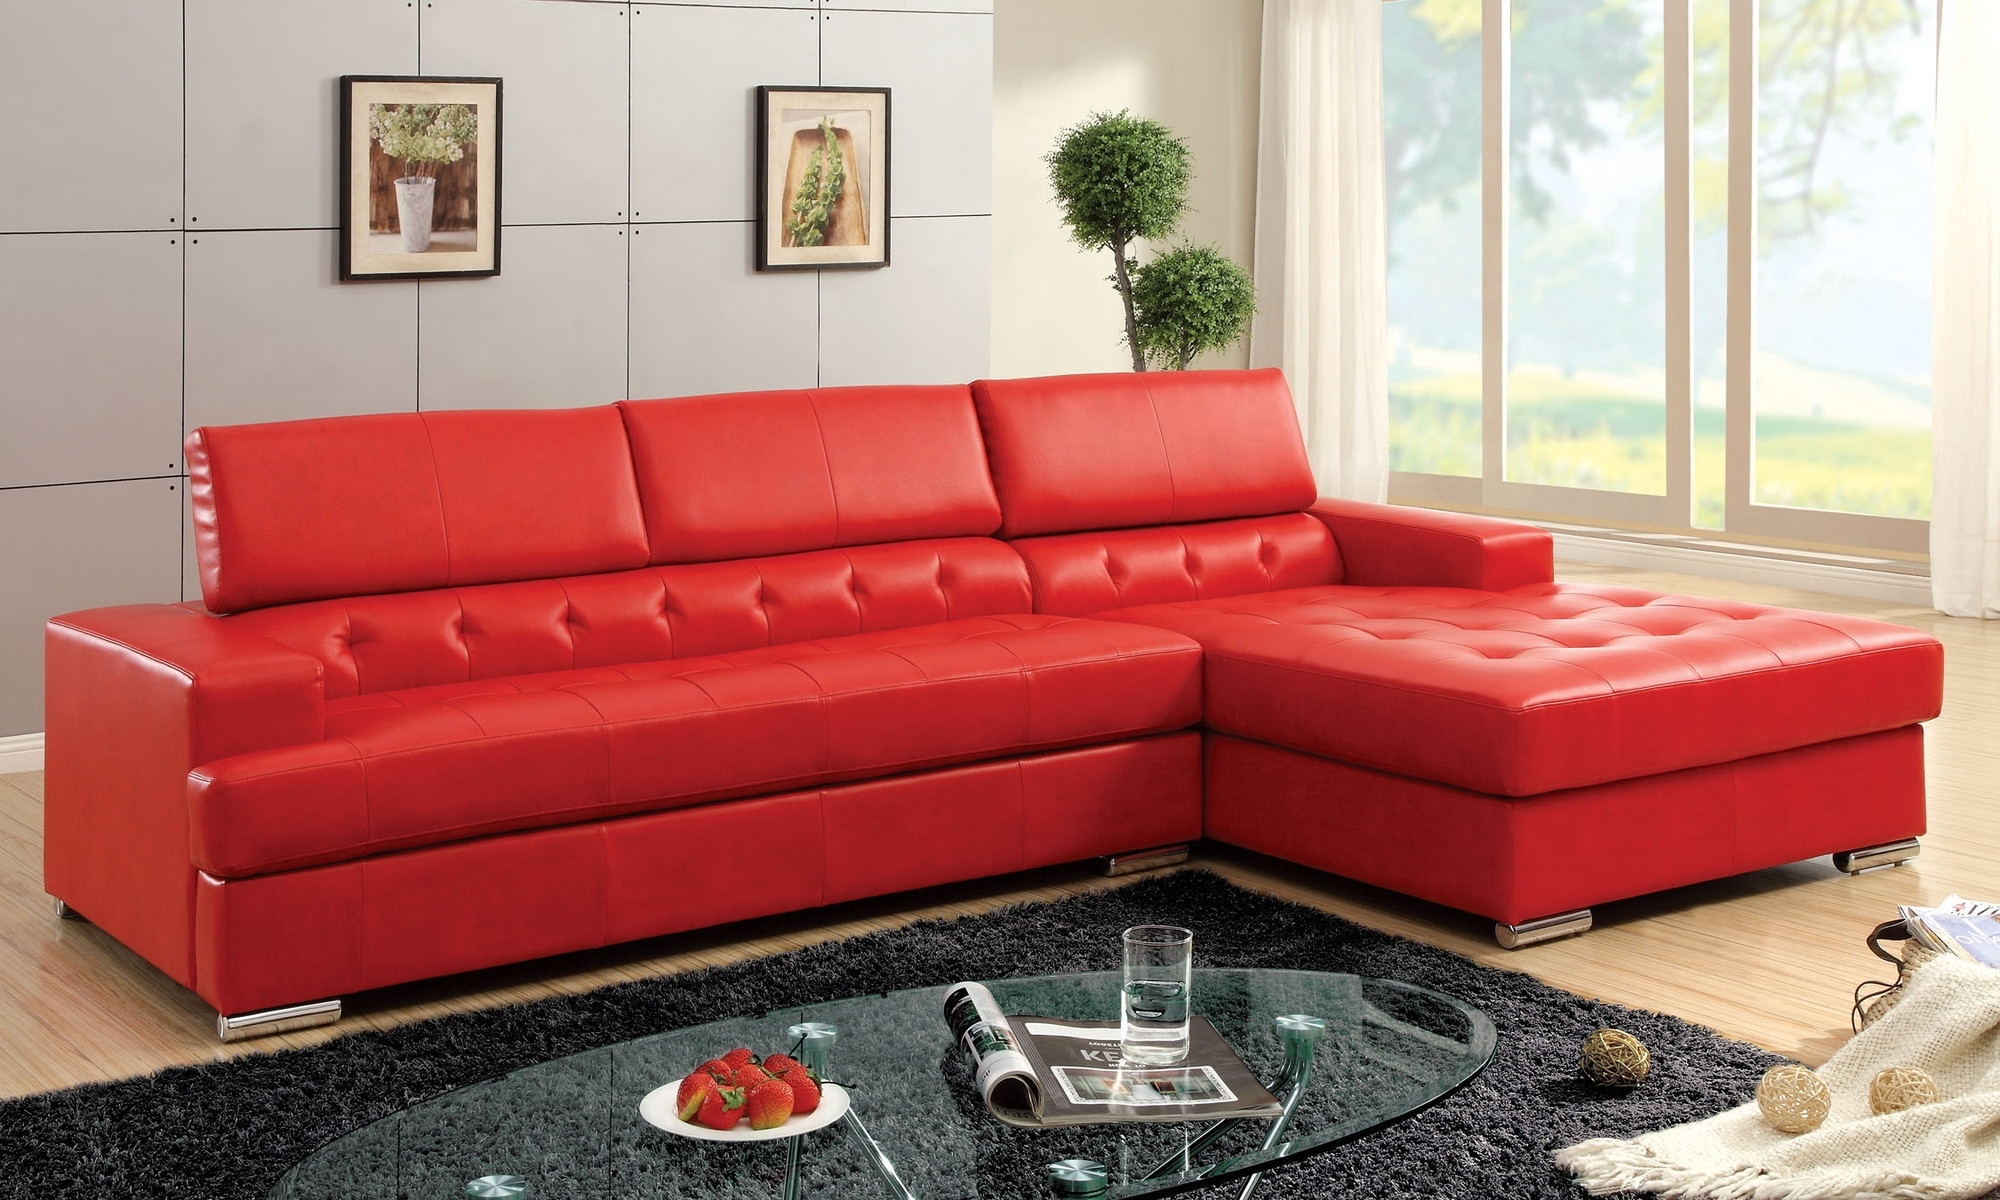 Red Leather Sectional Sofas With Recliners Regarding Preferred Coffee Tables For Sectionals Sectional Sofa Design Ideas Small (View 15 of 20)